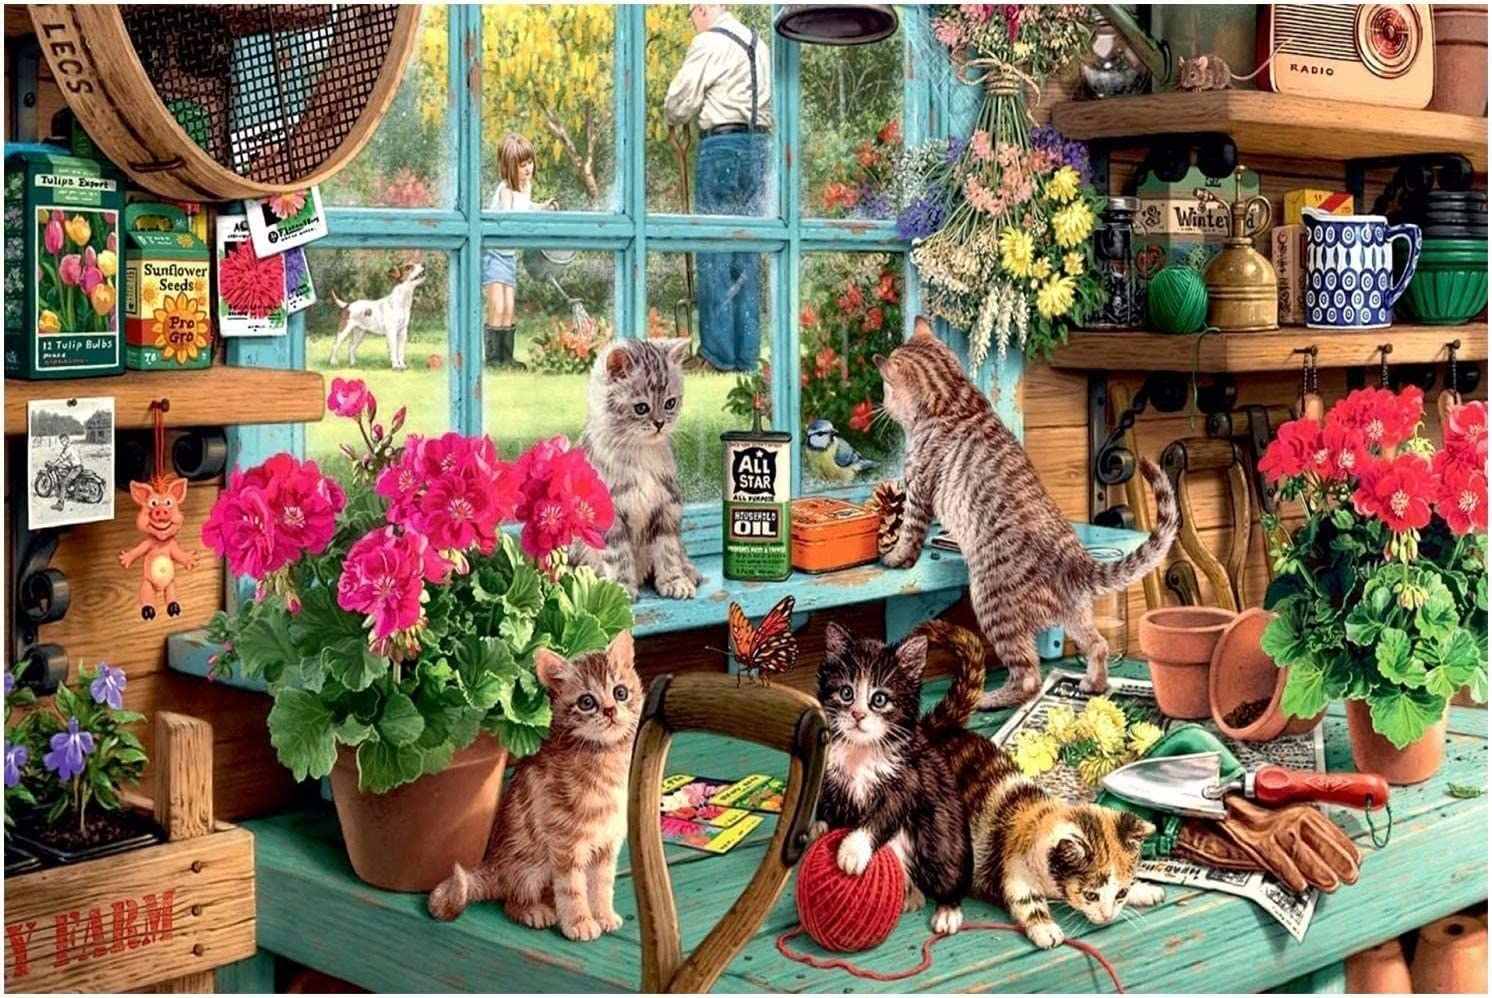 AILOTA Jigsaw Puzzles for Adults 1000 Piece The Cat by The Windowsill Large Puzzle Game for Adults,Educational Fun Jigsaw Toys for Kids